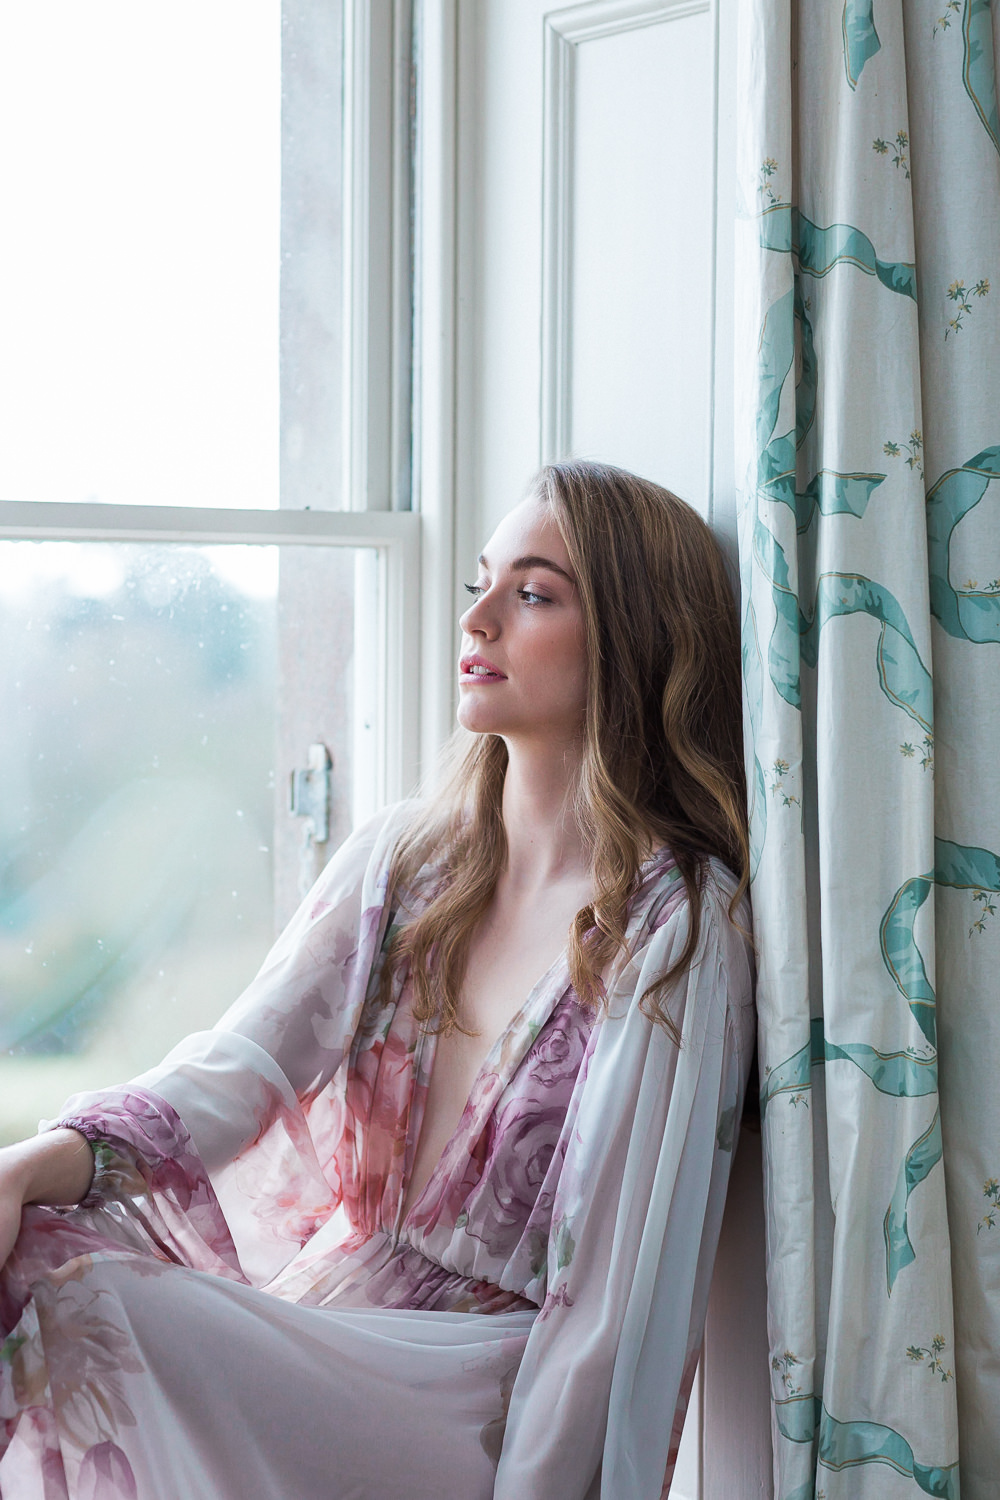 Modern Ballet Inspired Fine Art Editorial Somerley House Morning Bridal Prep Floral Robe Domenica Domenica Natural Make-up | Romantic Soft Wedding Ideas Siobhan H Photography